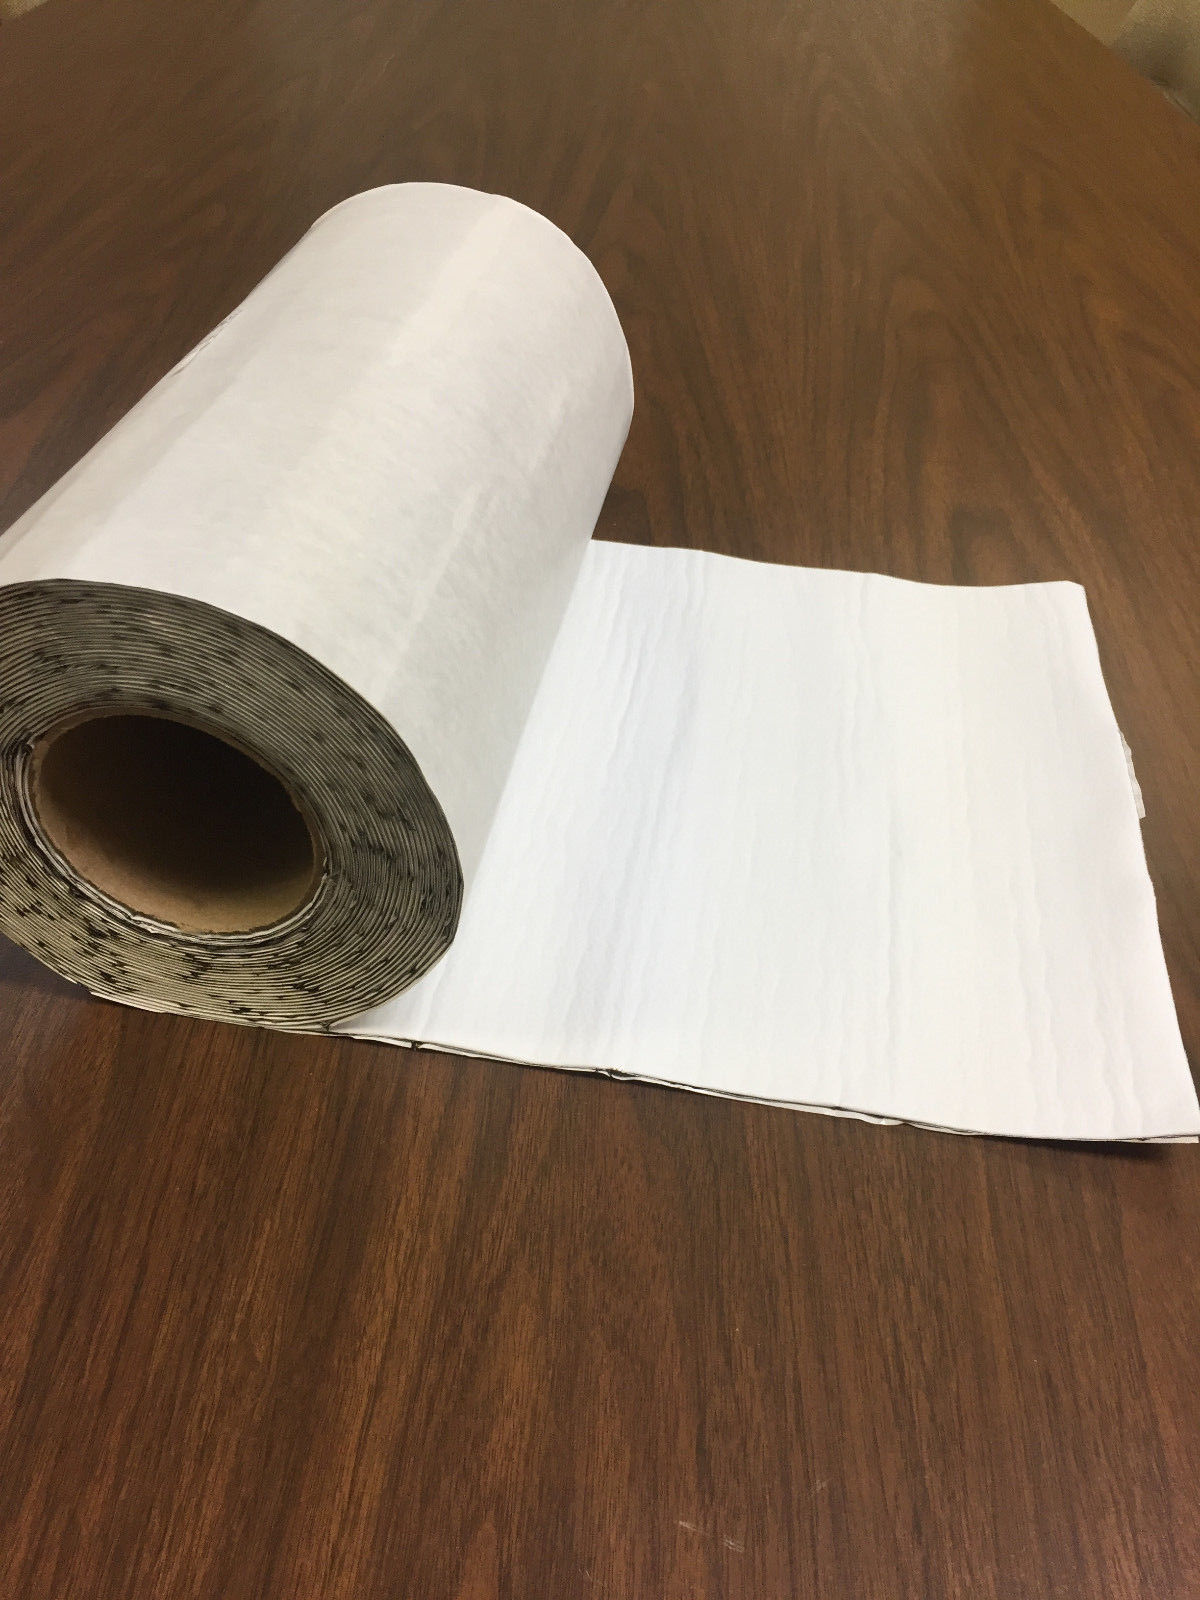 Single 12 Roll Of White Aluminum Top Mfm Peel And Seal